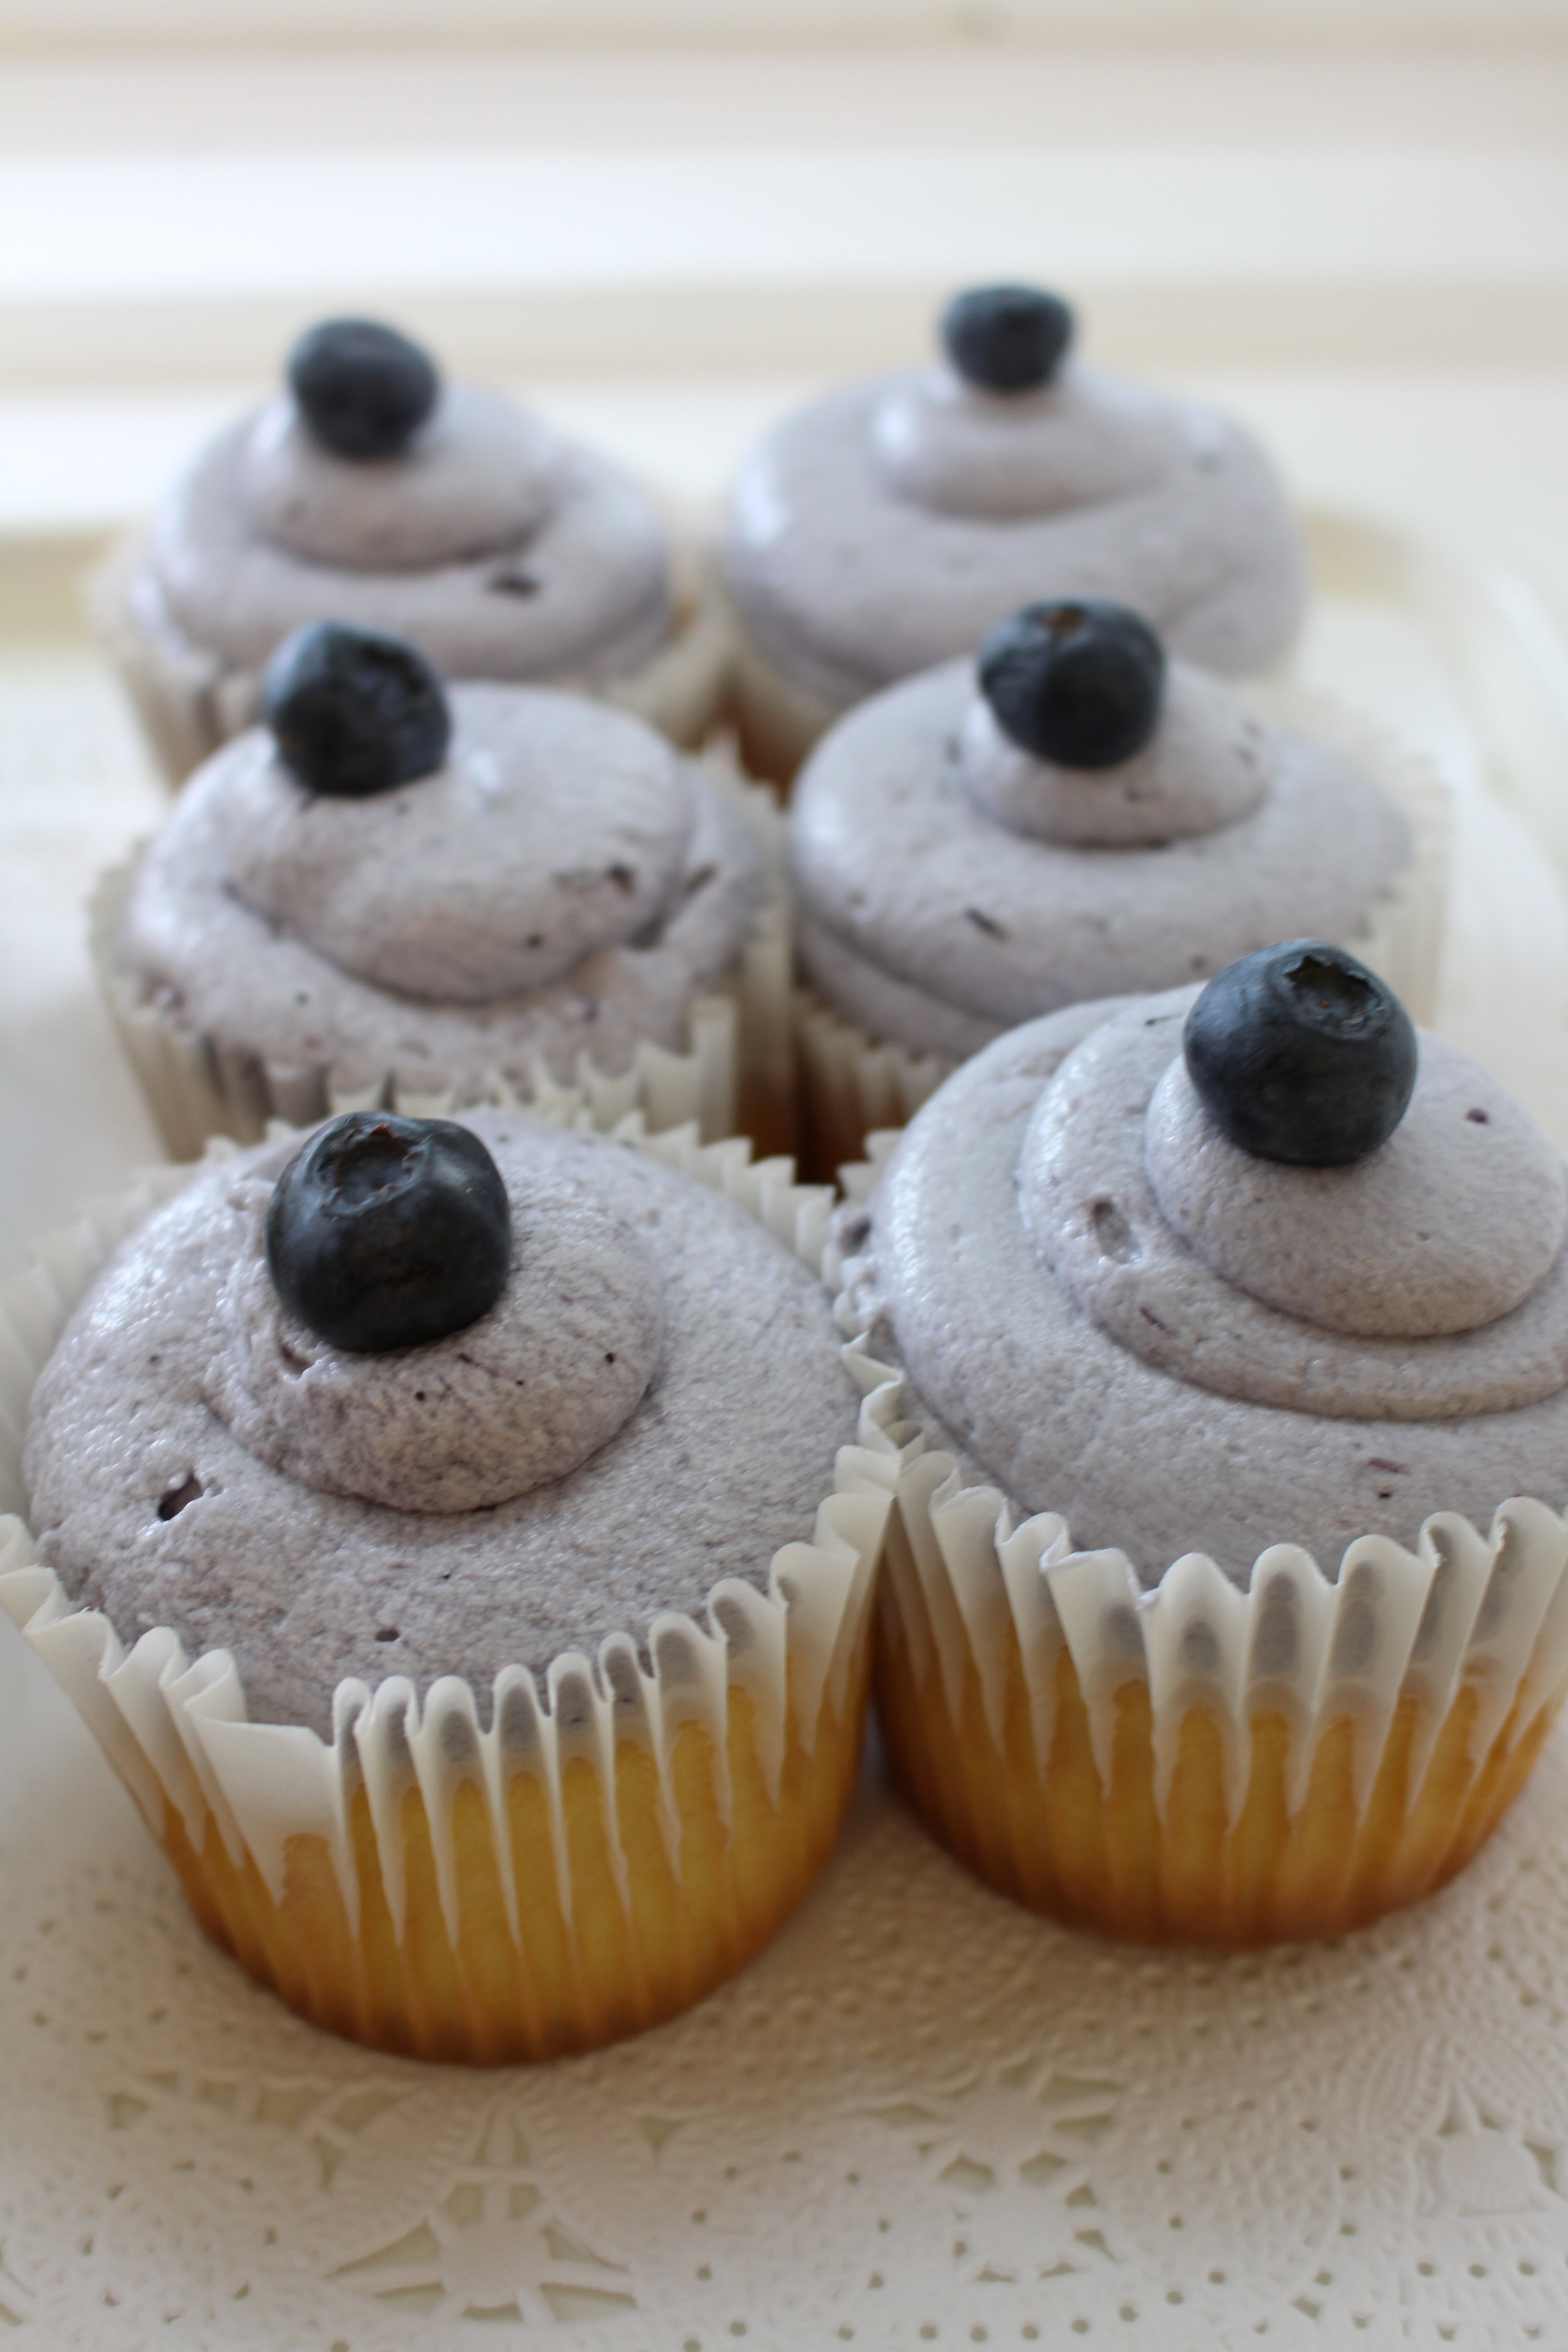 Lemon Cupcake with Blueberry Buttercream Frosting